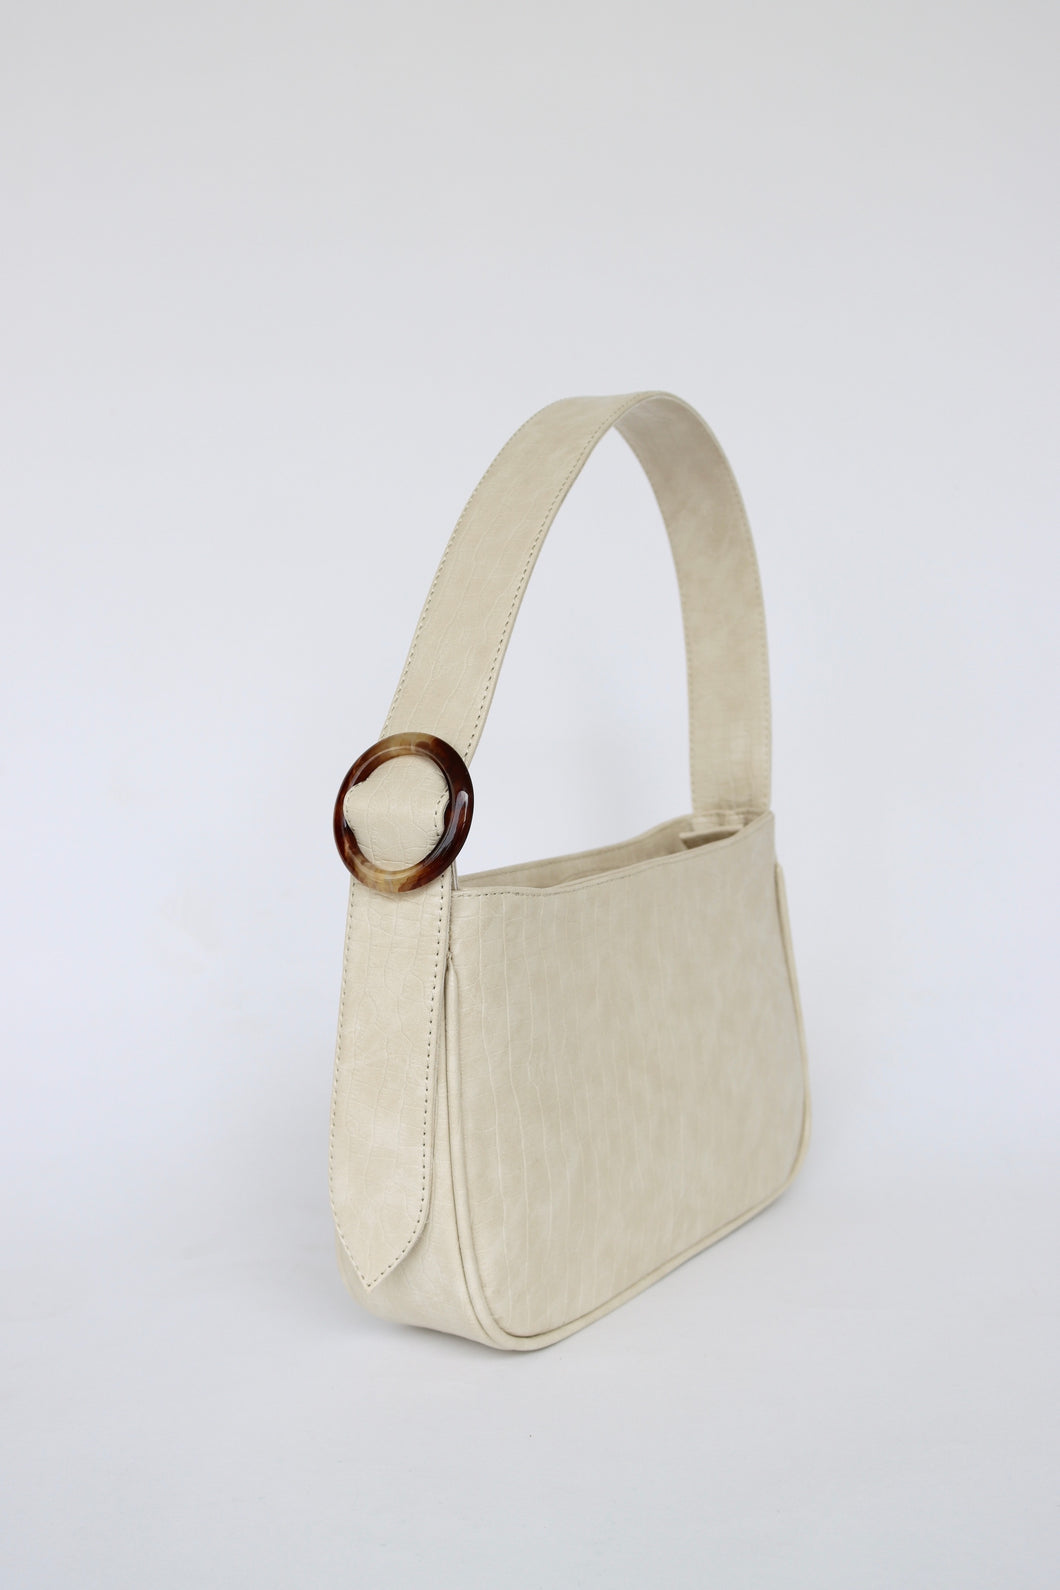 Shoulder Bag SIDERAL color marfil con hebilla de carey